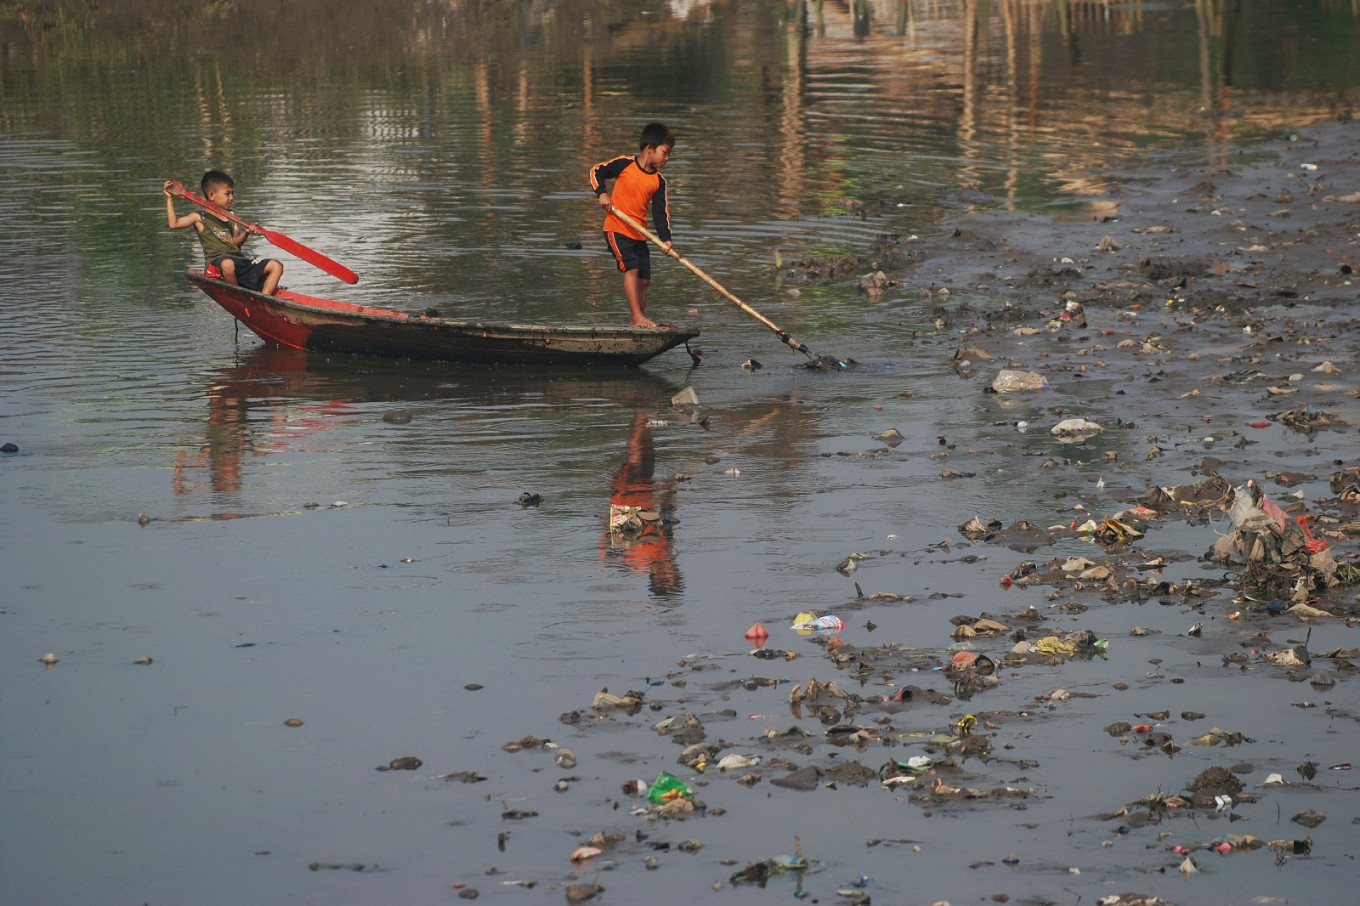 Indonesian students win award for plan to clean up Citarum River